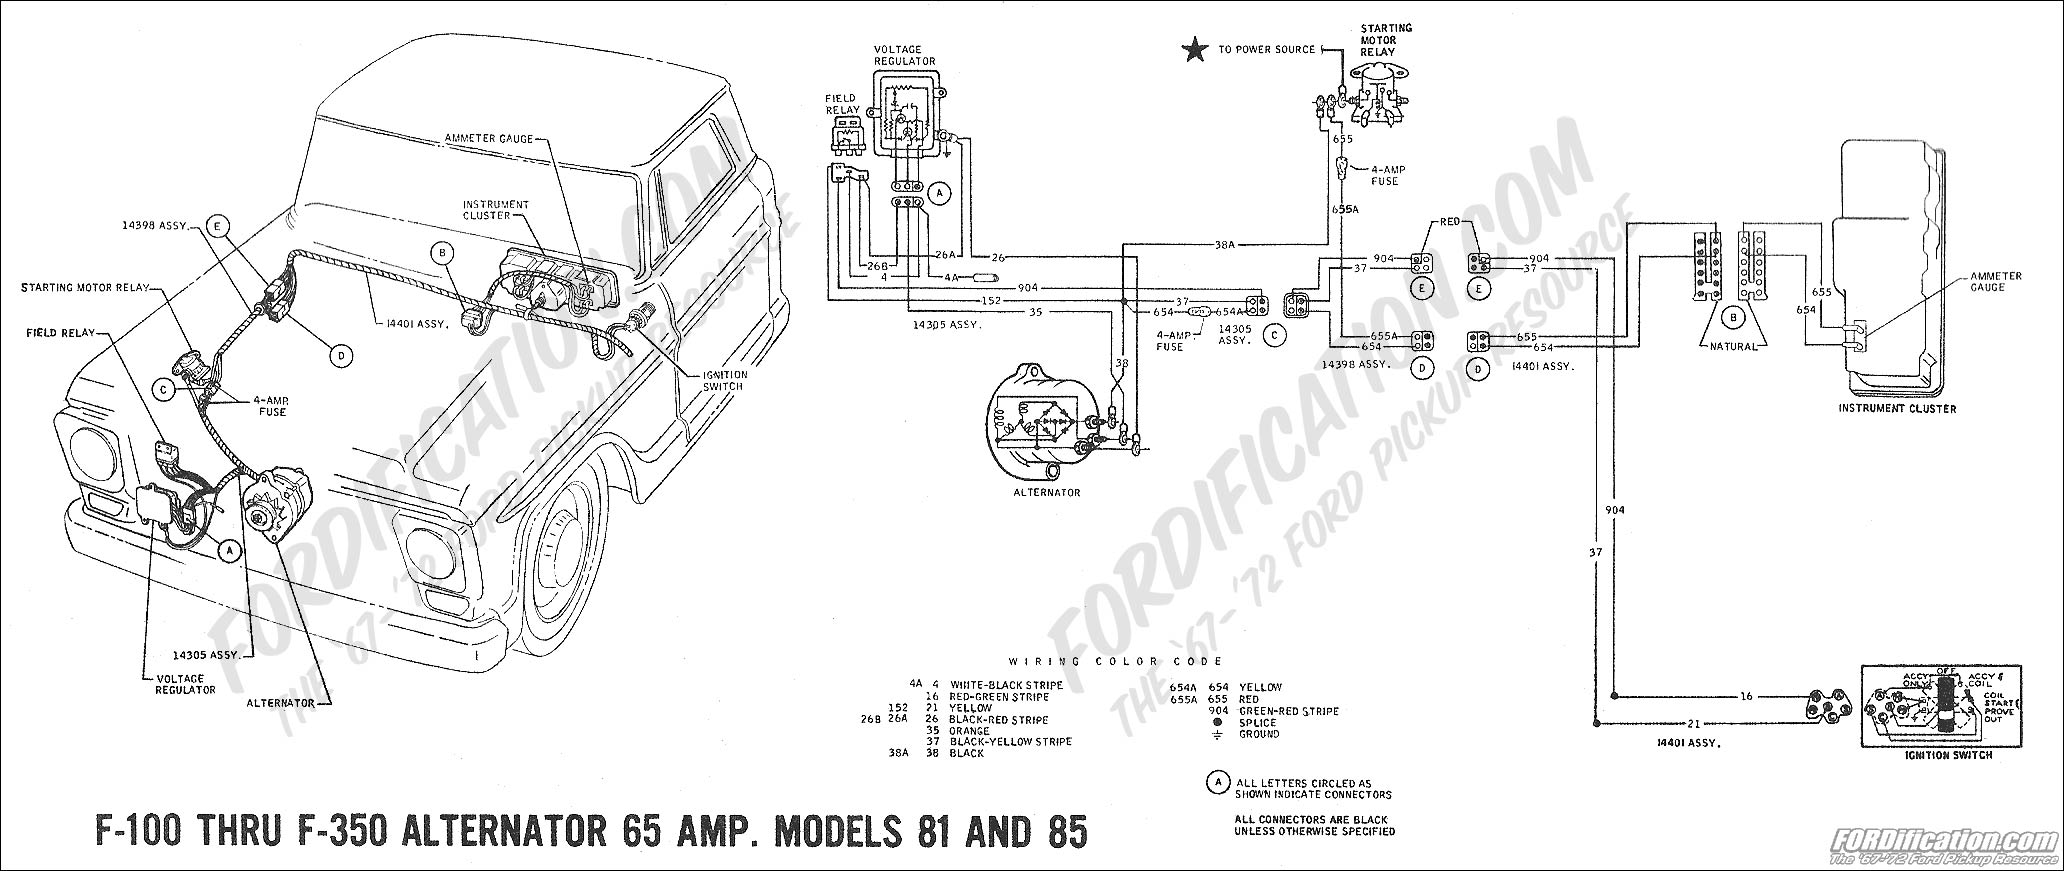 wiring_69charging03 1977 ford f100 alternator wiring diagram wiring diagram and 1969 Ford F100 Steering Column Wiring Diagram at crackthecode.co